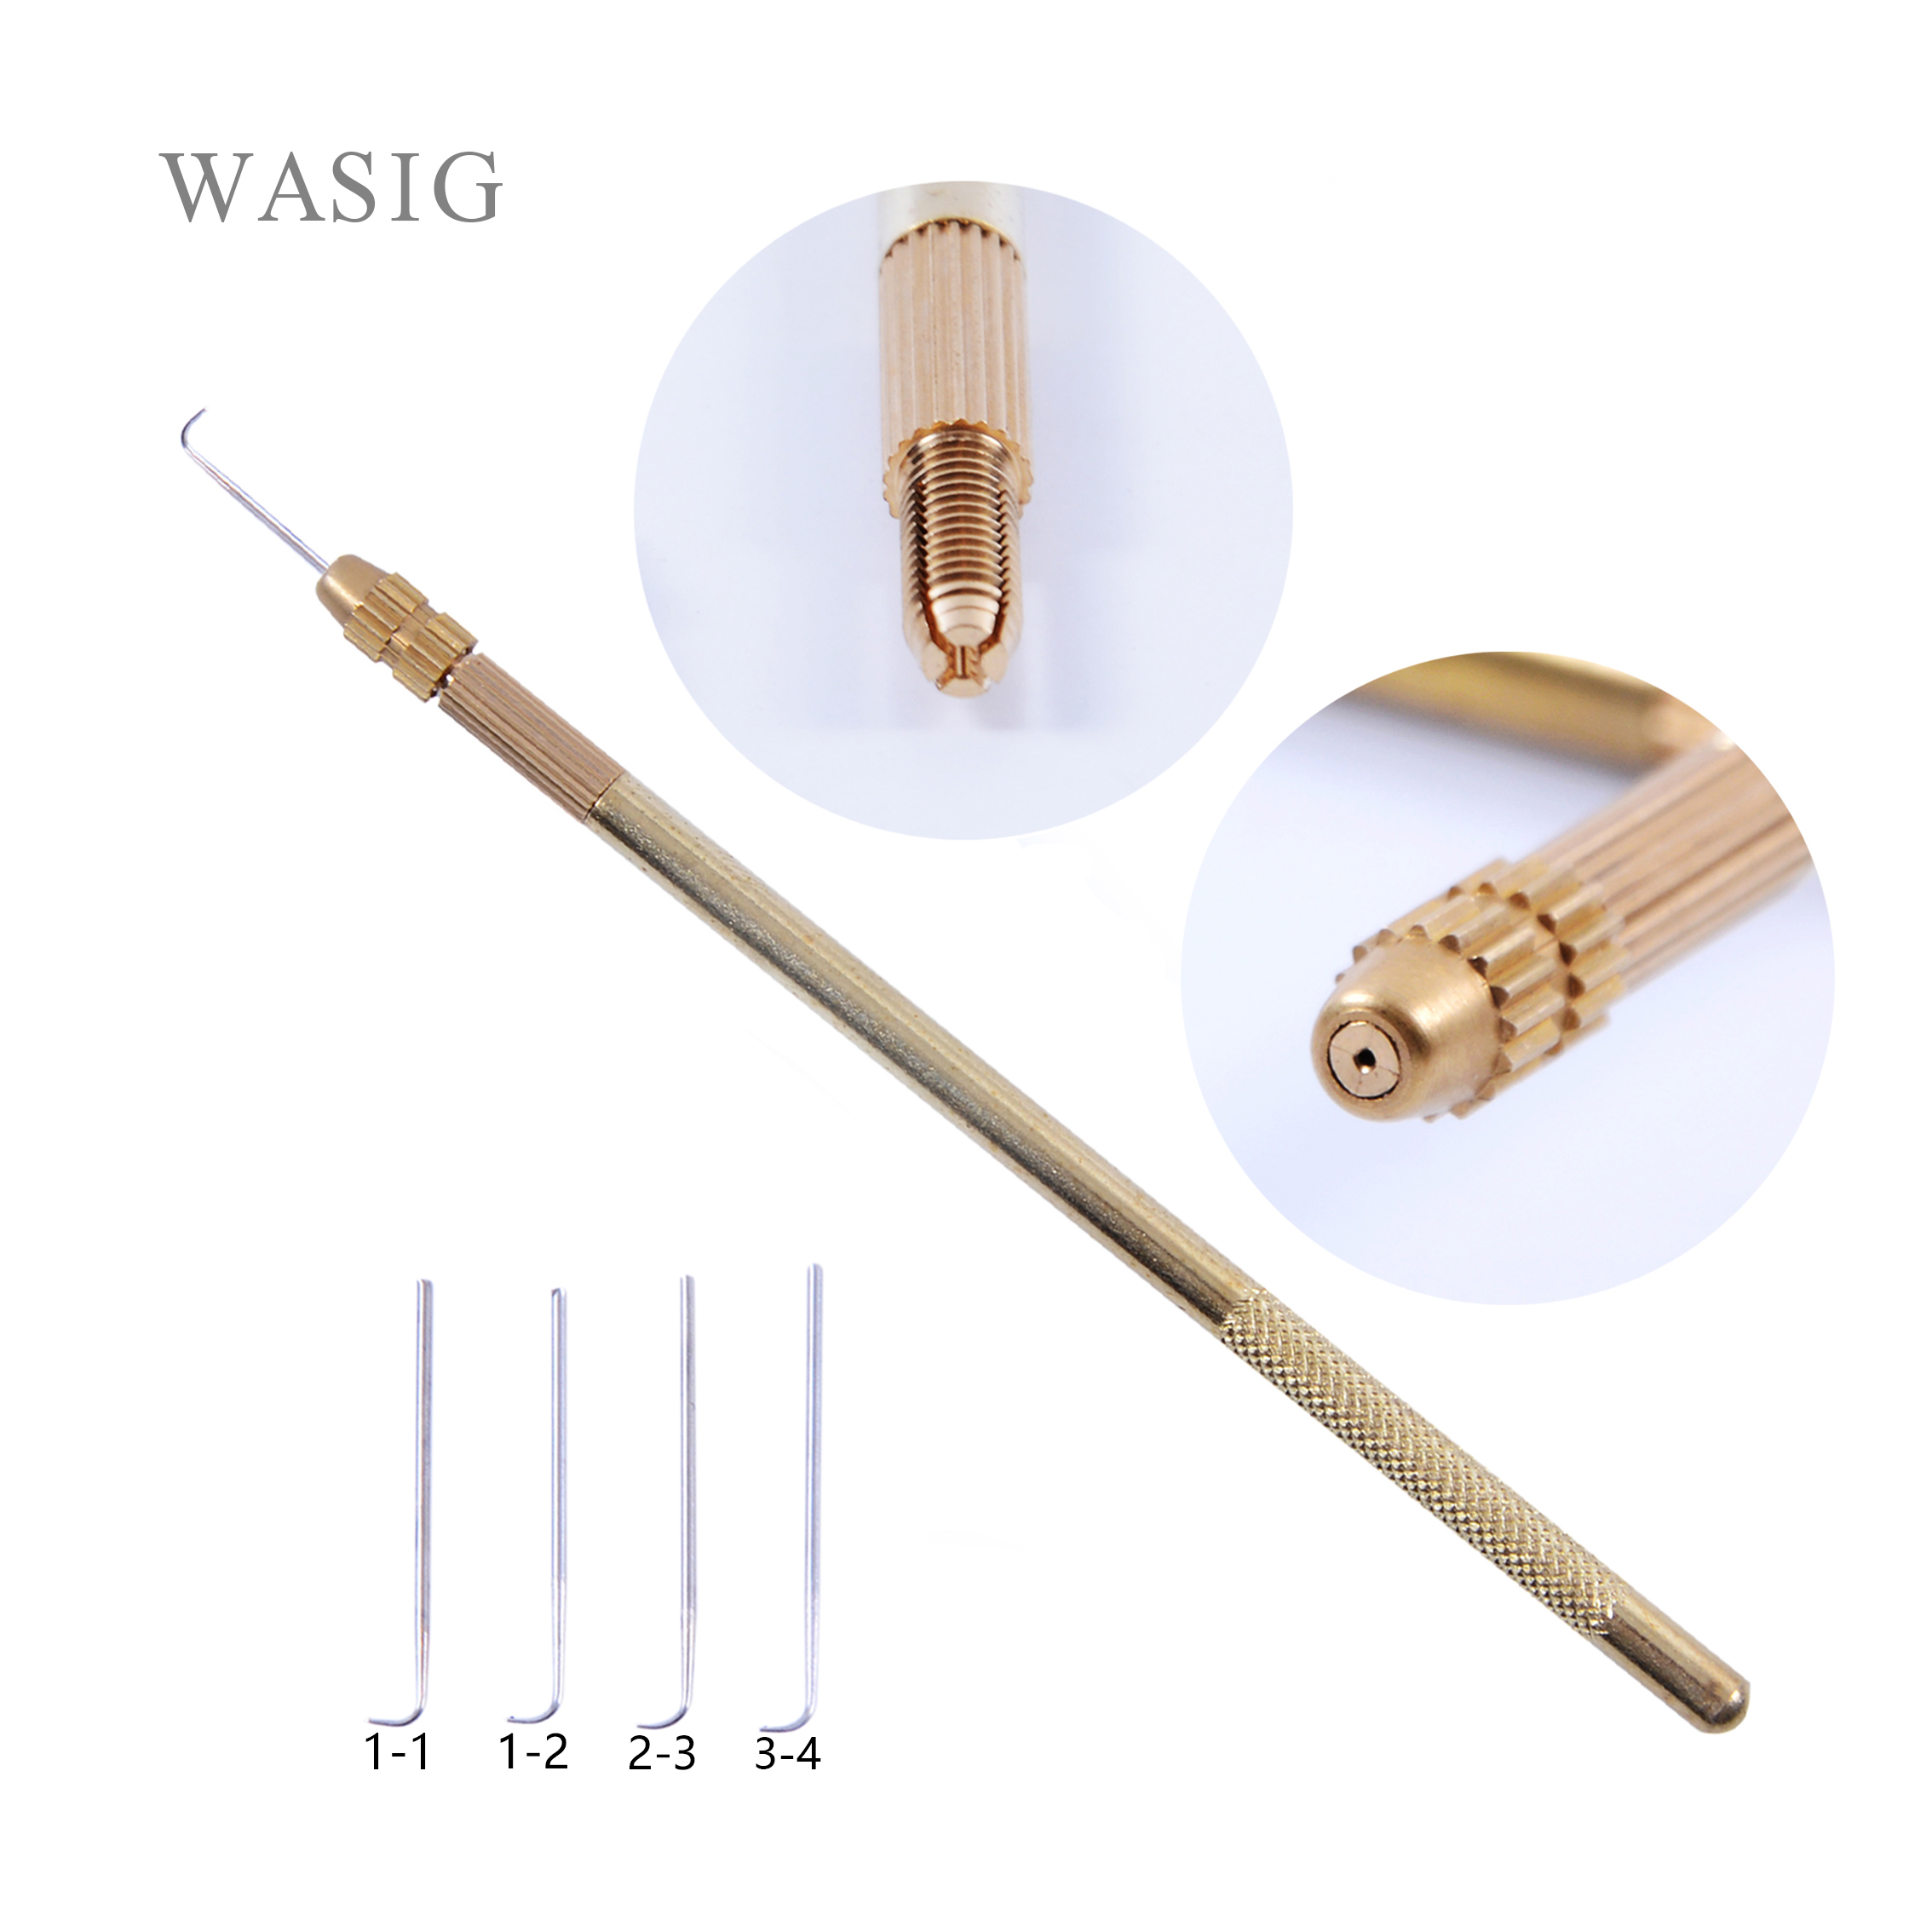 Hot Selling Hair Extension Tools 1 Set Professional Bronze Ventilating Holder And Ventilating Needles For Lace Wigs (1Pcs+4Pcs)